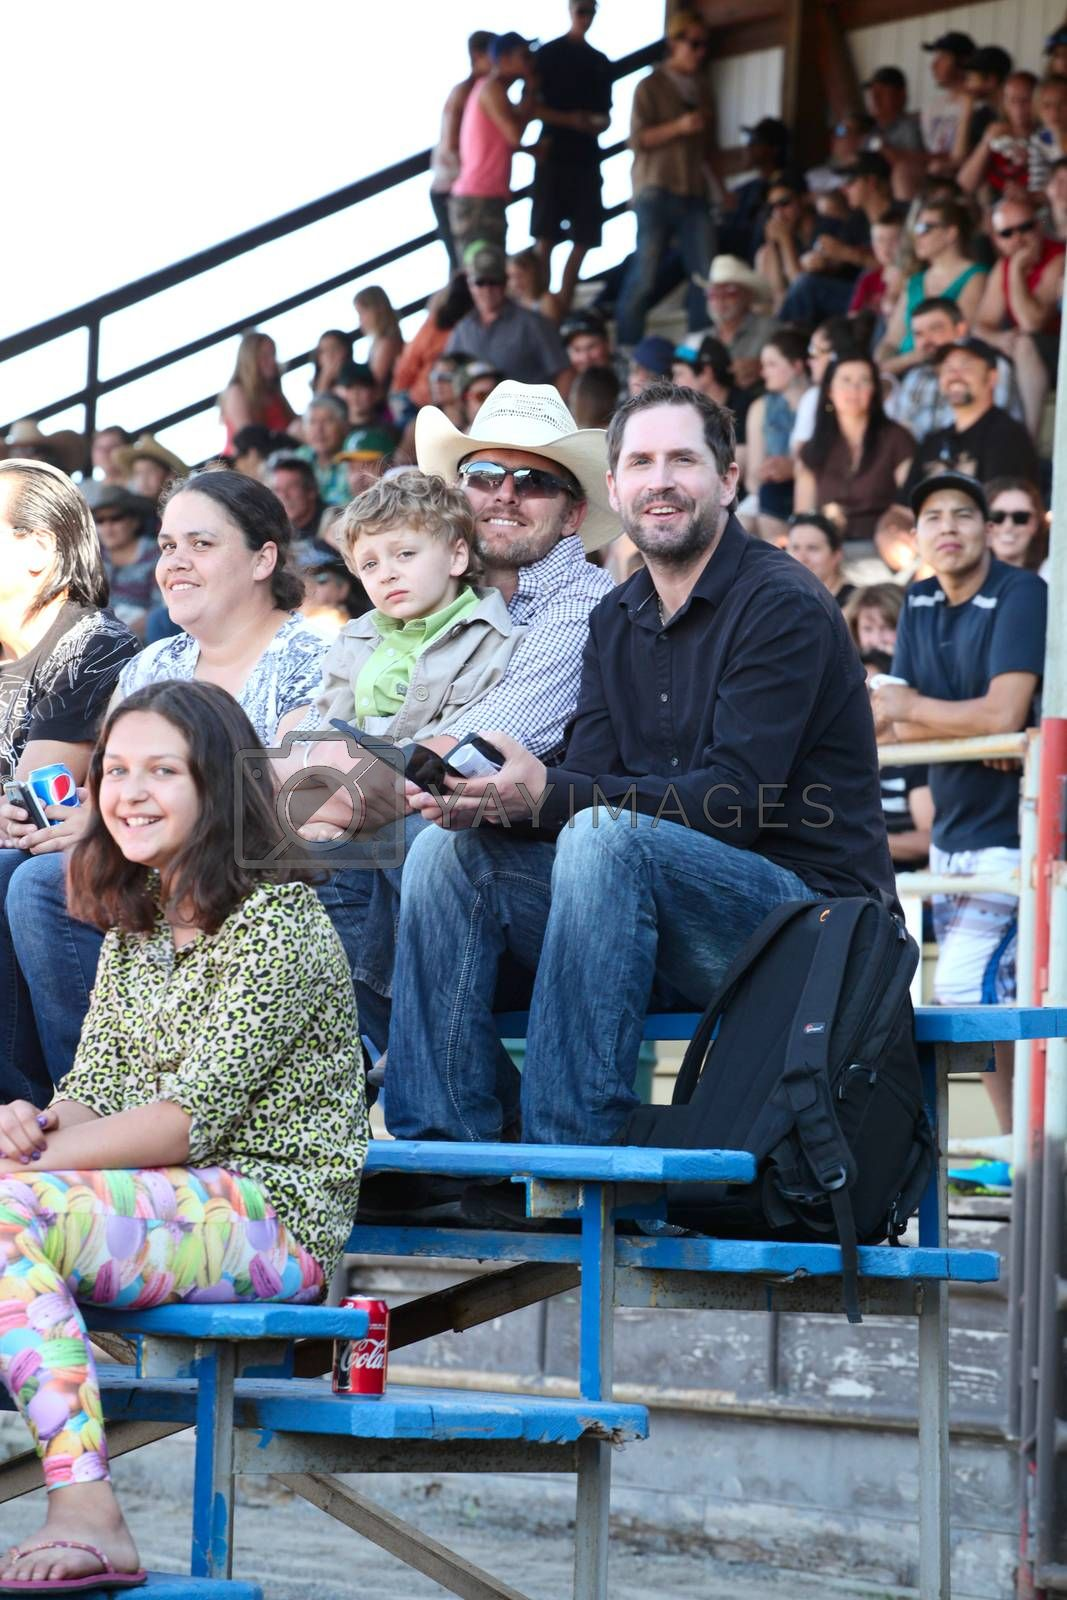 MERRITT, B.C. CANADA - May 30, 2015: Spectators at The 3rd Annual Ty Pozzobon Invitational PBR Event.